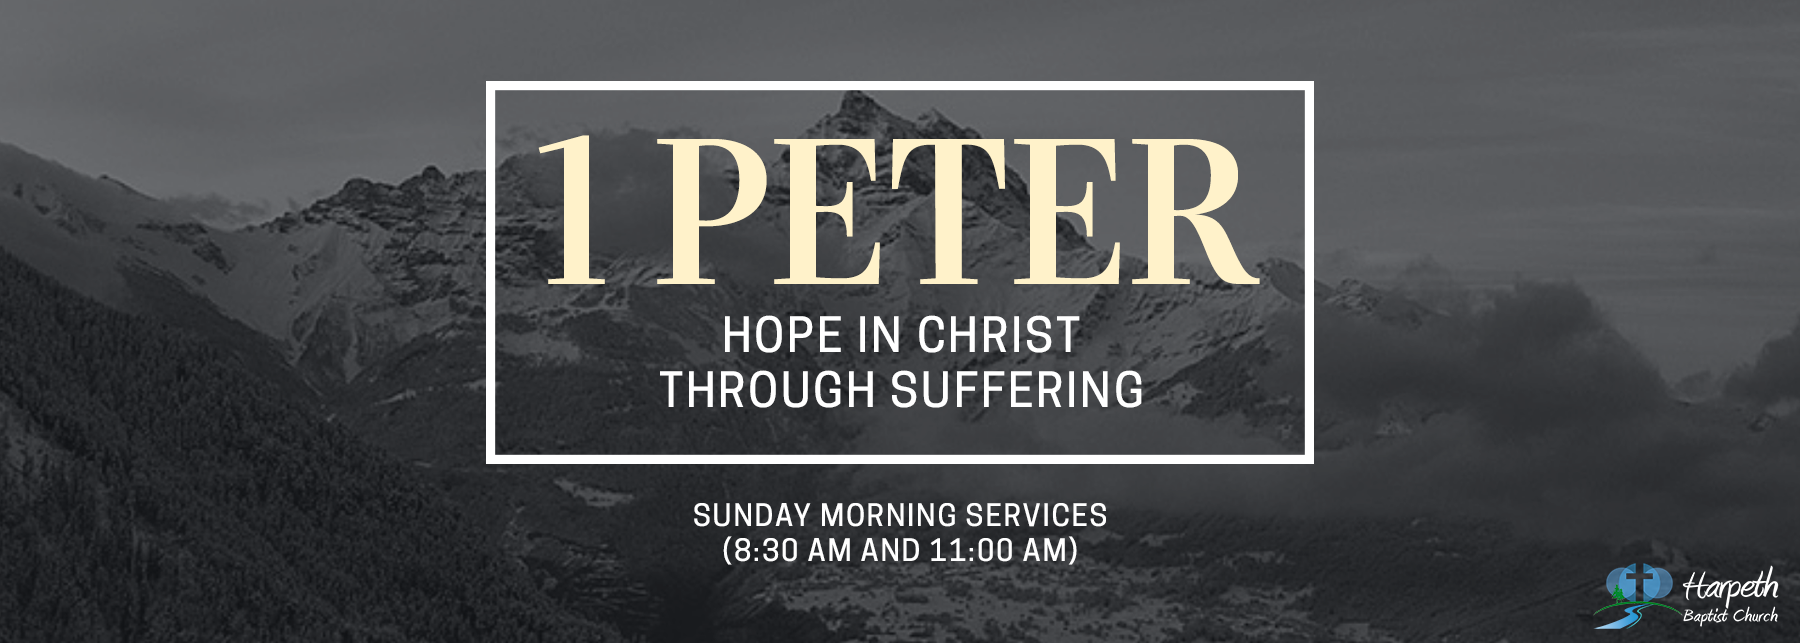 1 Peter | Harpeth Baptist Church